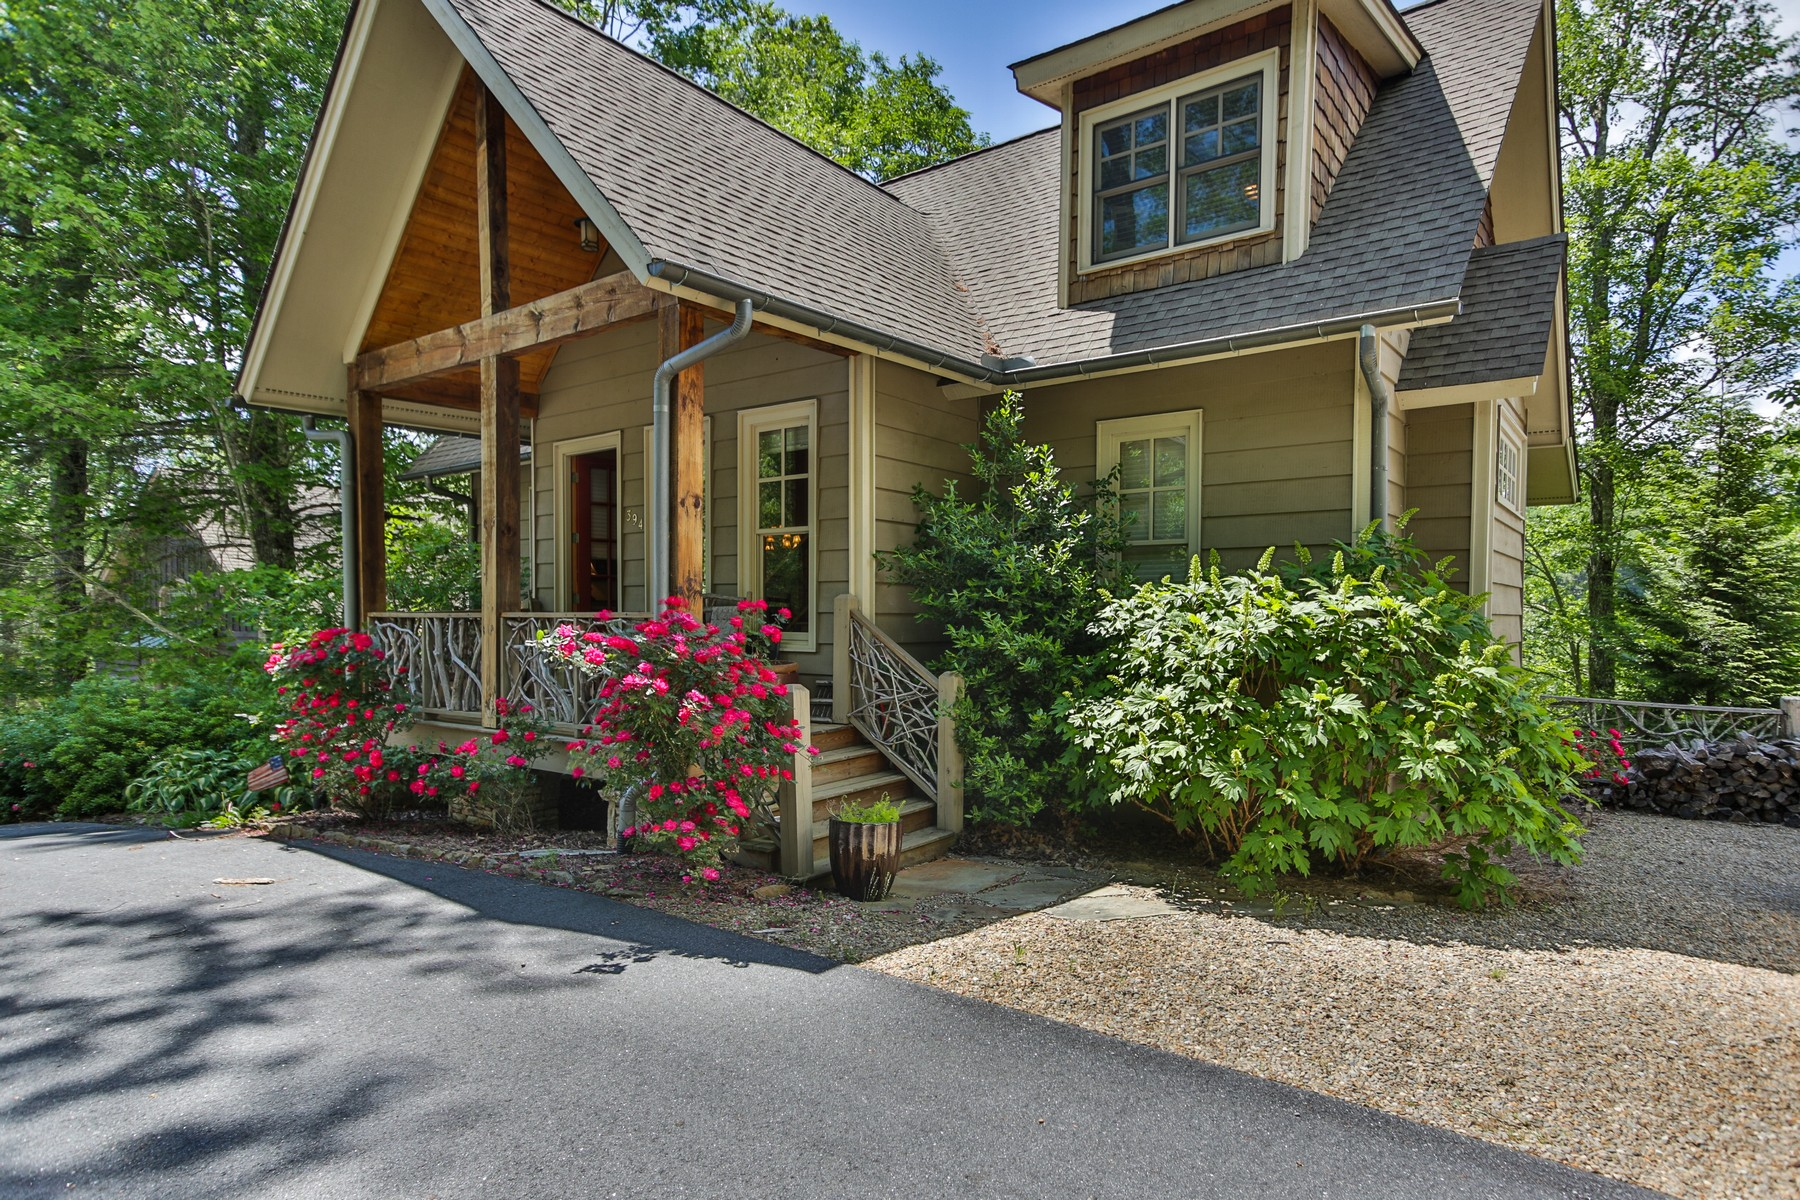 Single Family Homes for Active at Pezeshkan 394 Rendezvous Ridge Cashiers, North Carolina 28717 United States